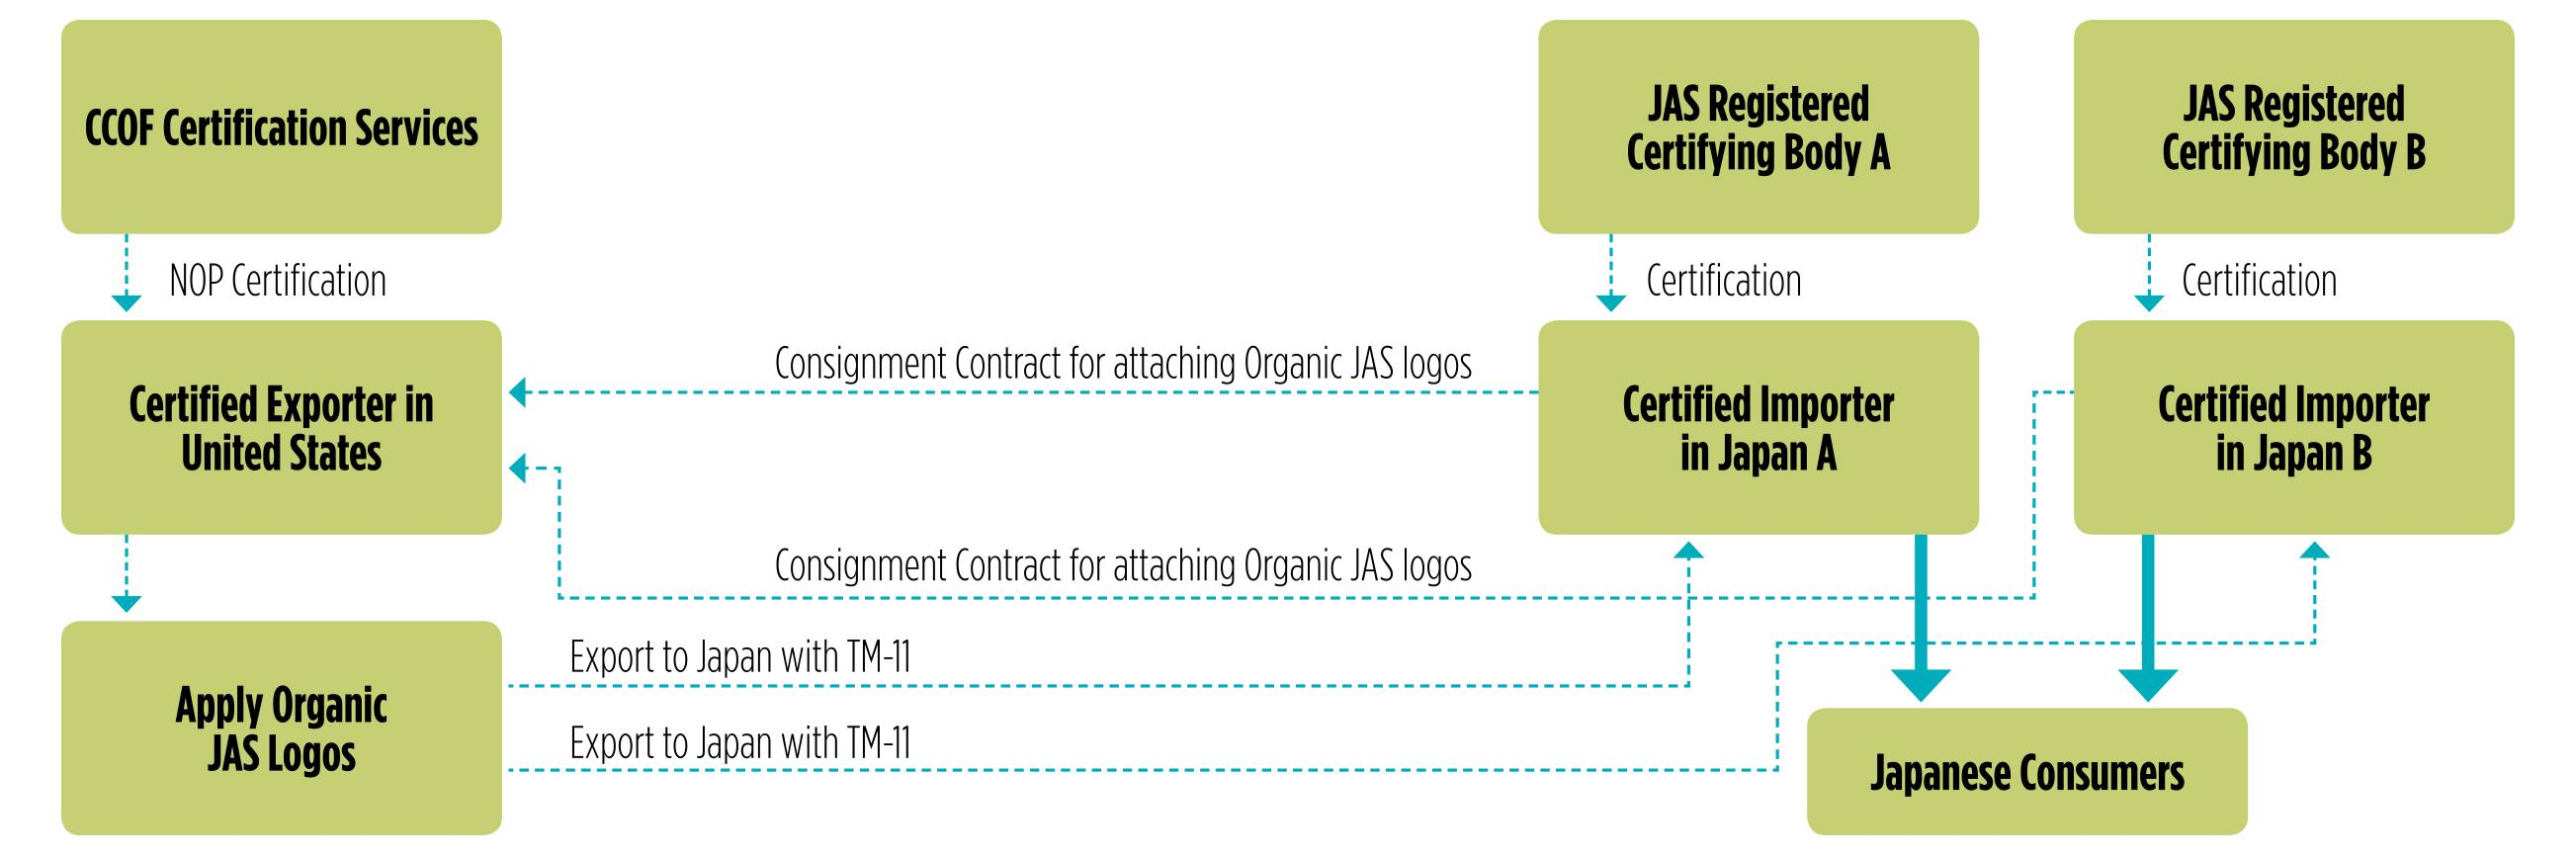 Japan Changes Organic Export System Allows Use Of Jas Seal Ccof